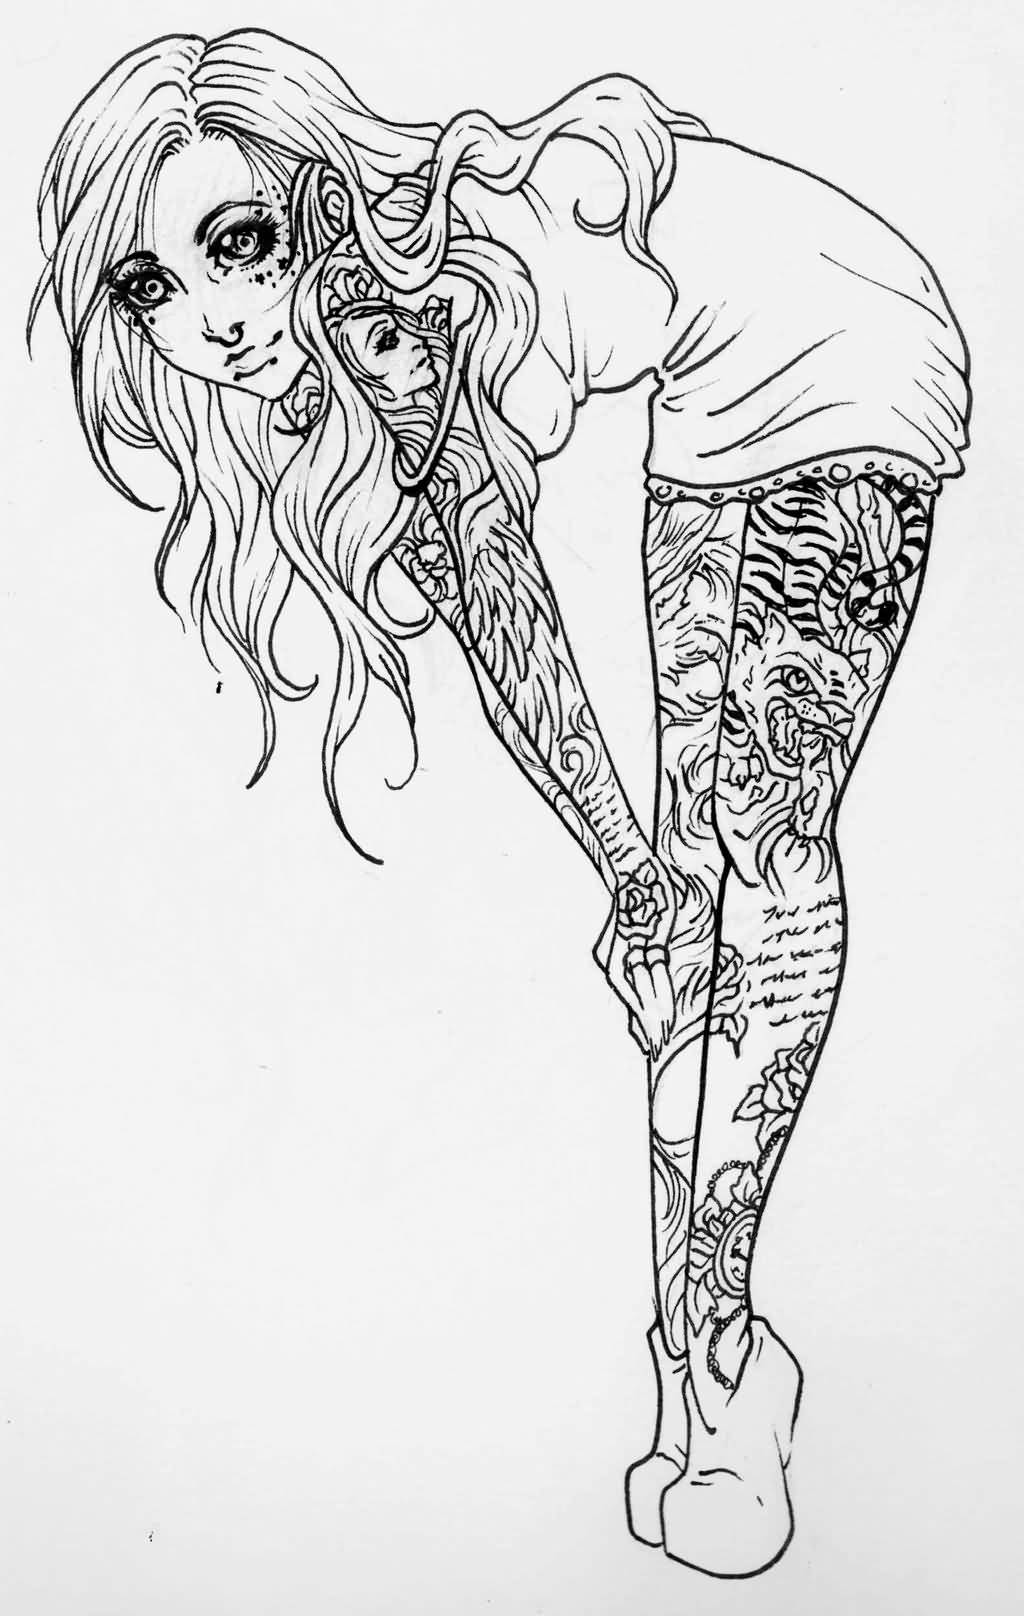 Tattoo pin up girls designs - Lovely Pin Up Girl Tattoo Design By Jessicacanvas